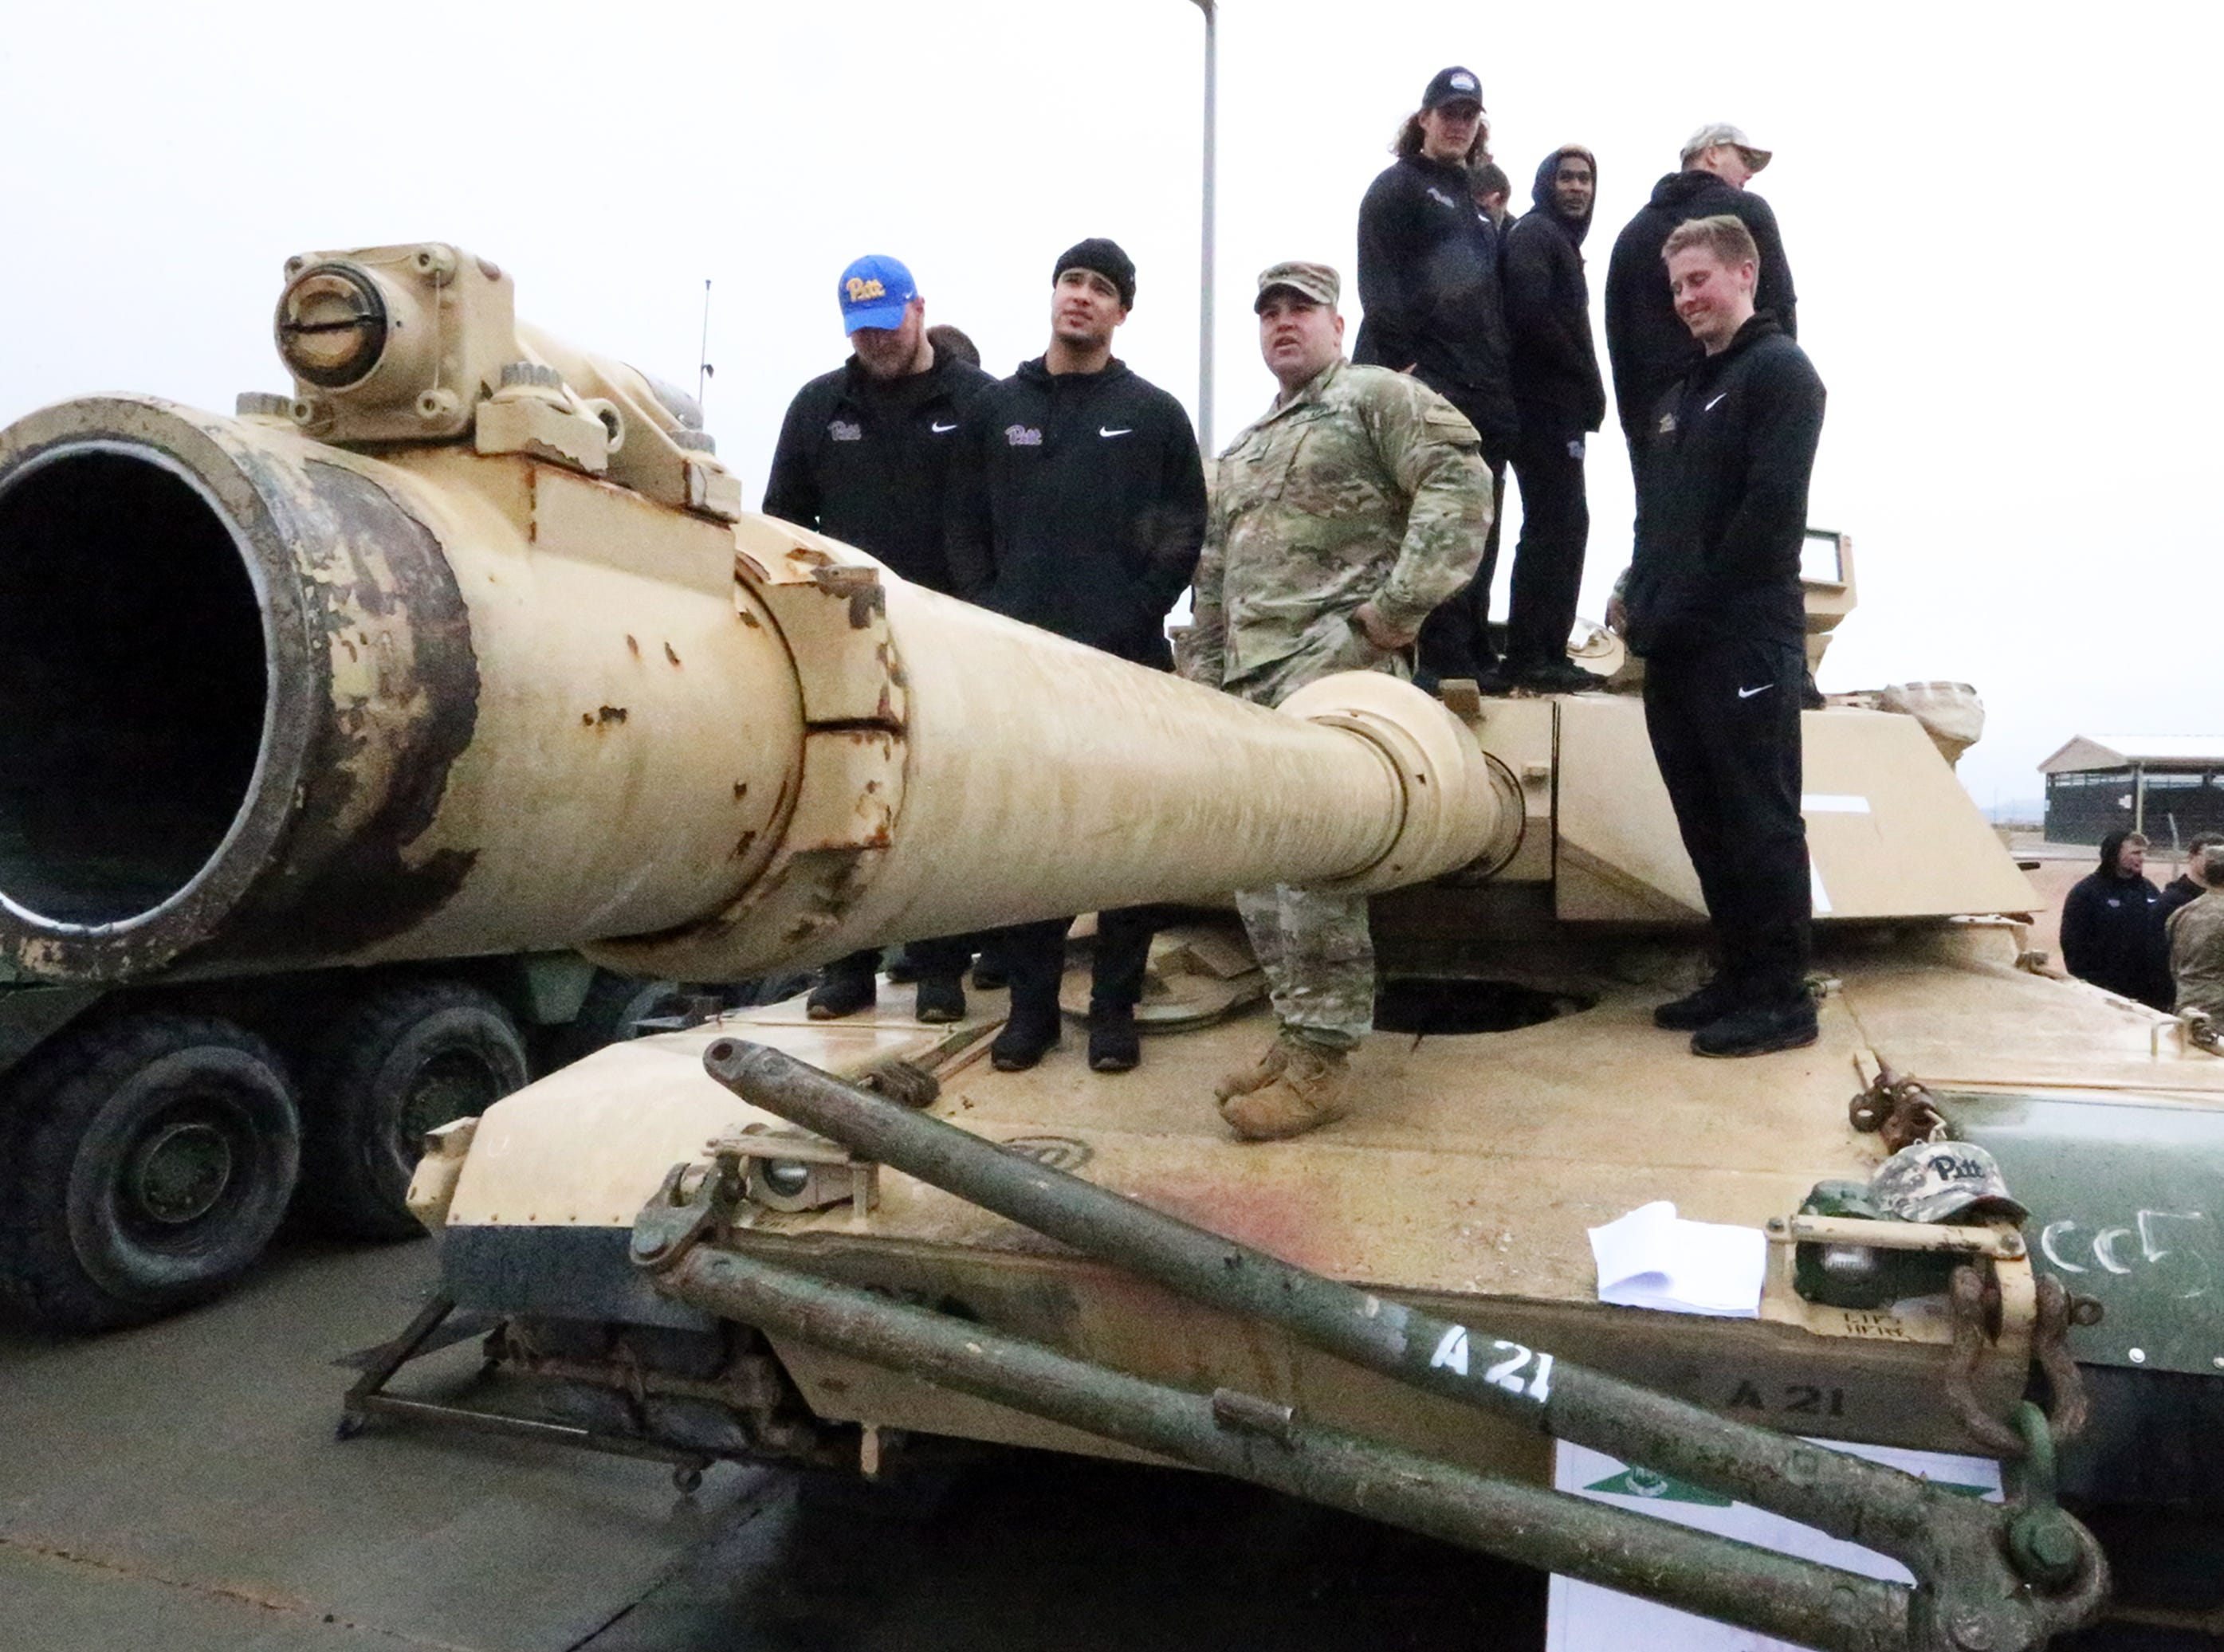 University of Pittsburgh players stand atop an M1A2 Abrams main battle tank during a visit to Fort Bliss Friday afternoon. The players also viewed a M2A3 Bradley Fighting Vehicle, a Stryker armored vehicle, a Patriot missile launcher and tried out simulators. The Stanford Cardinal football team was scheduled to visit the site following Pitt.